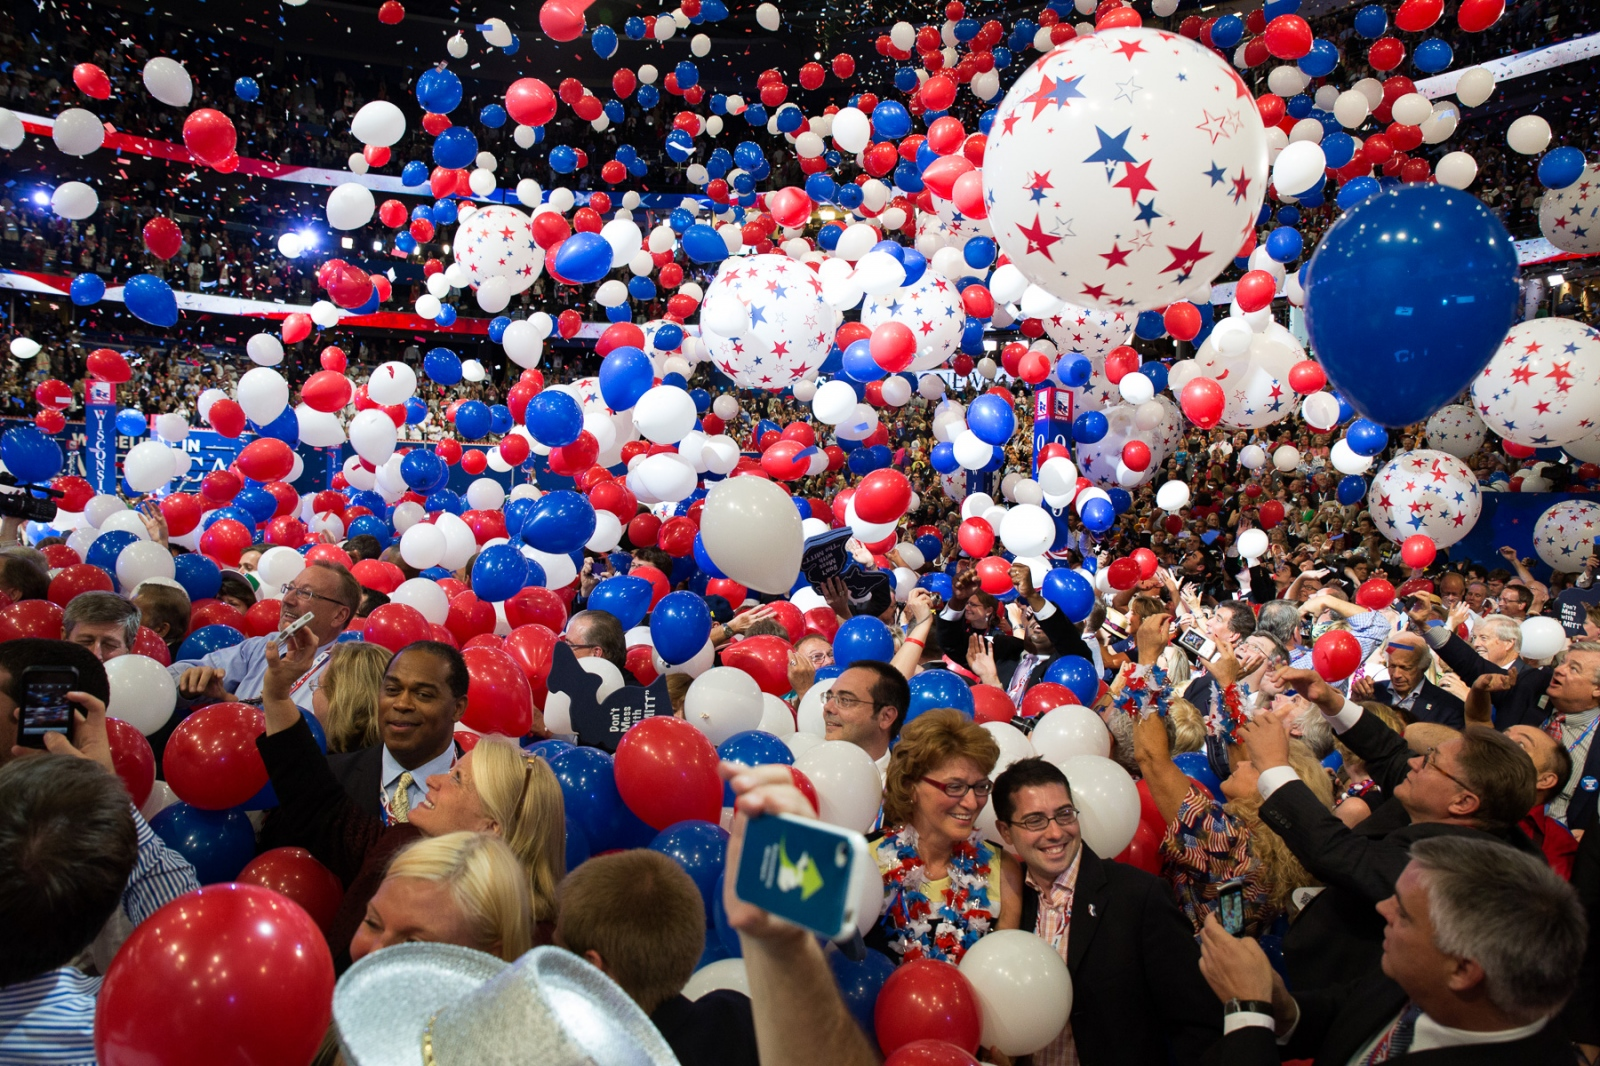 During the 2012 Republican National Convention balloons engulf the delegates after the nomination of Mitt Romney.